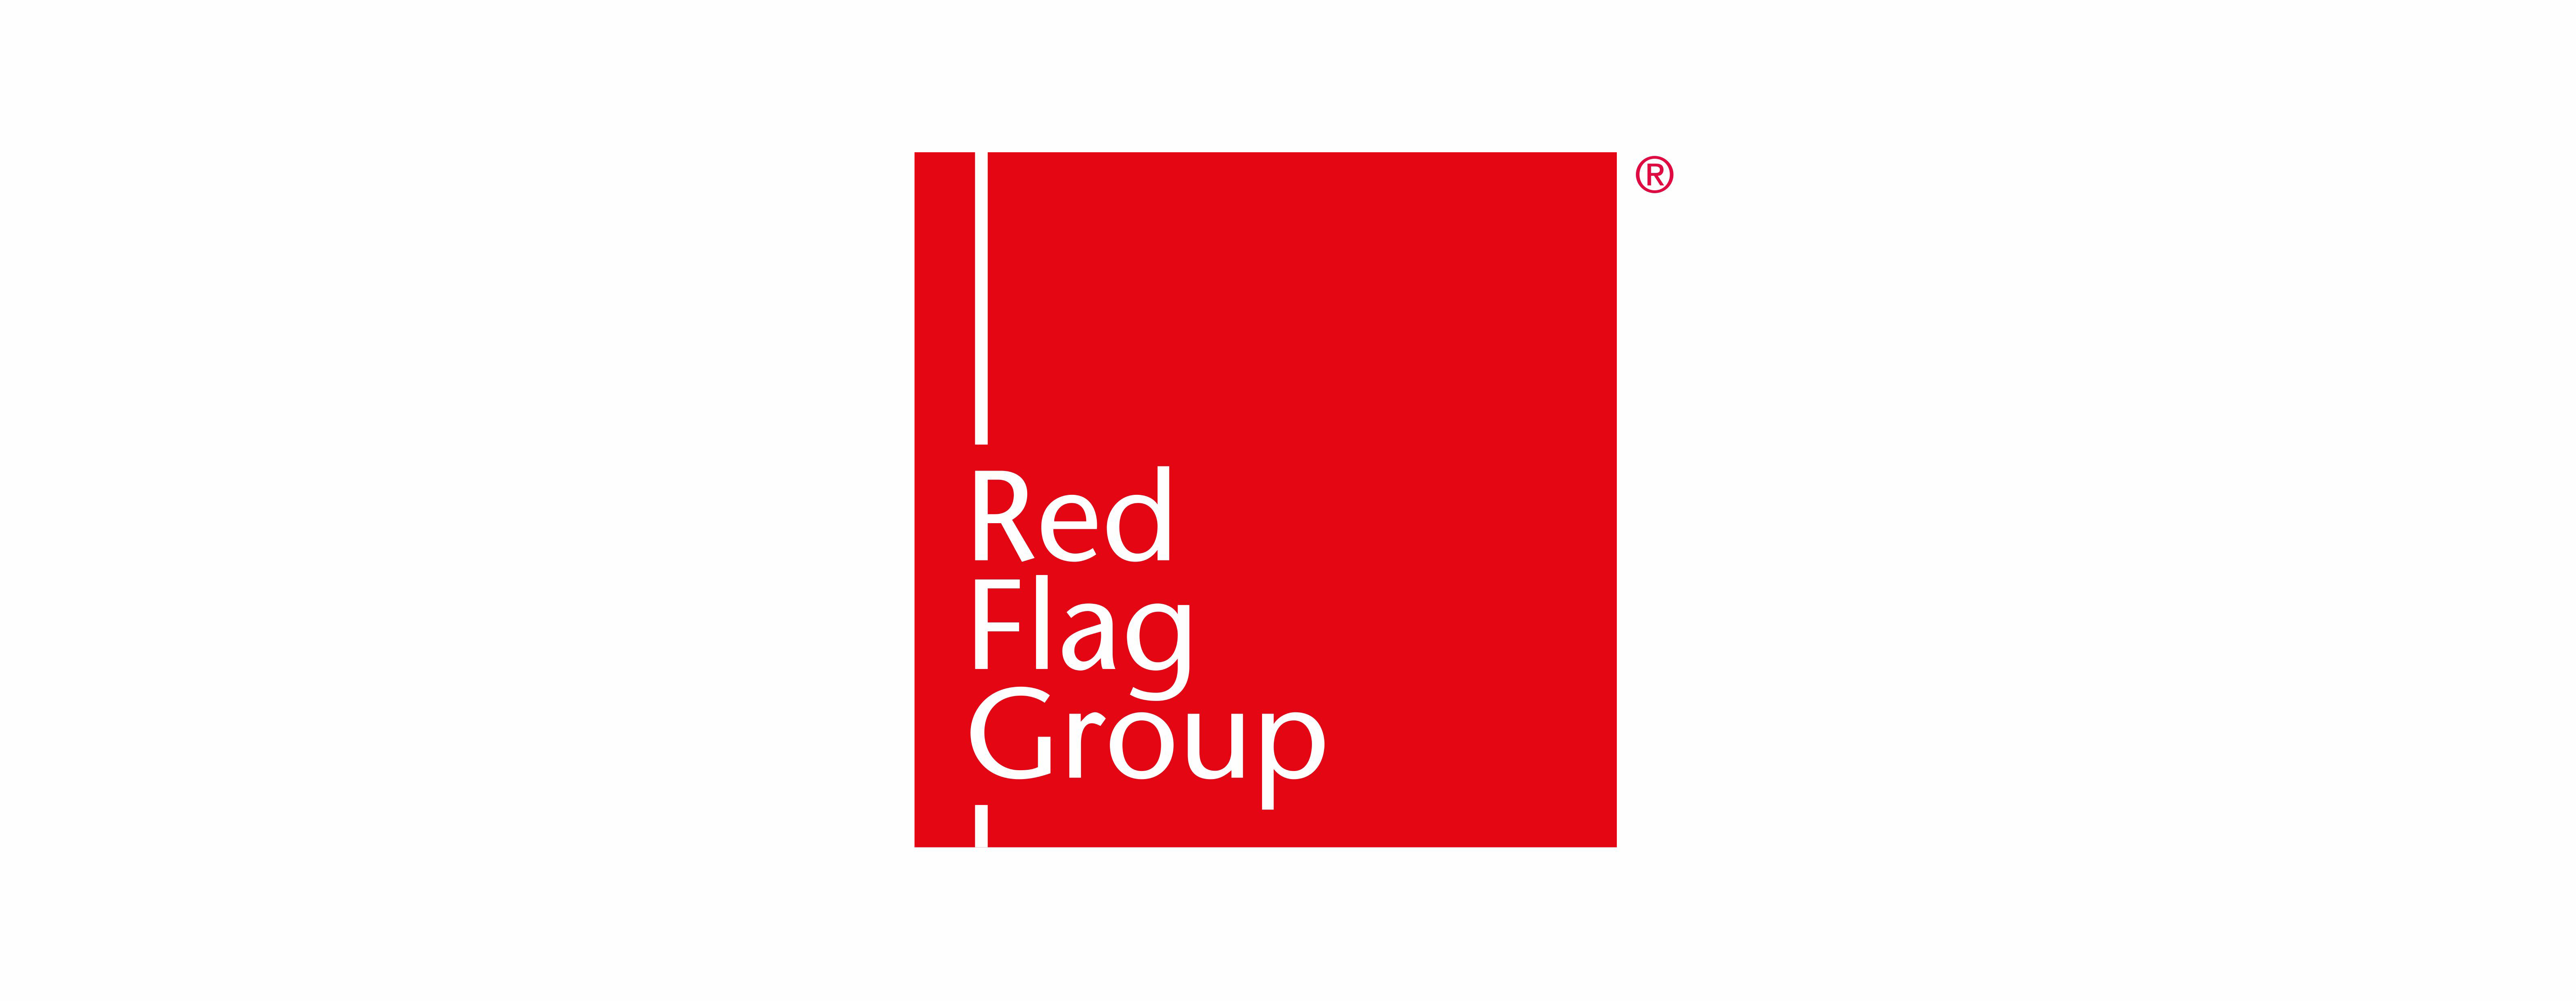 Refinitiv Announces Acquisition of The Red Flag Group